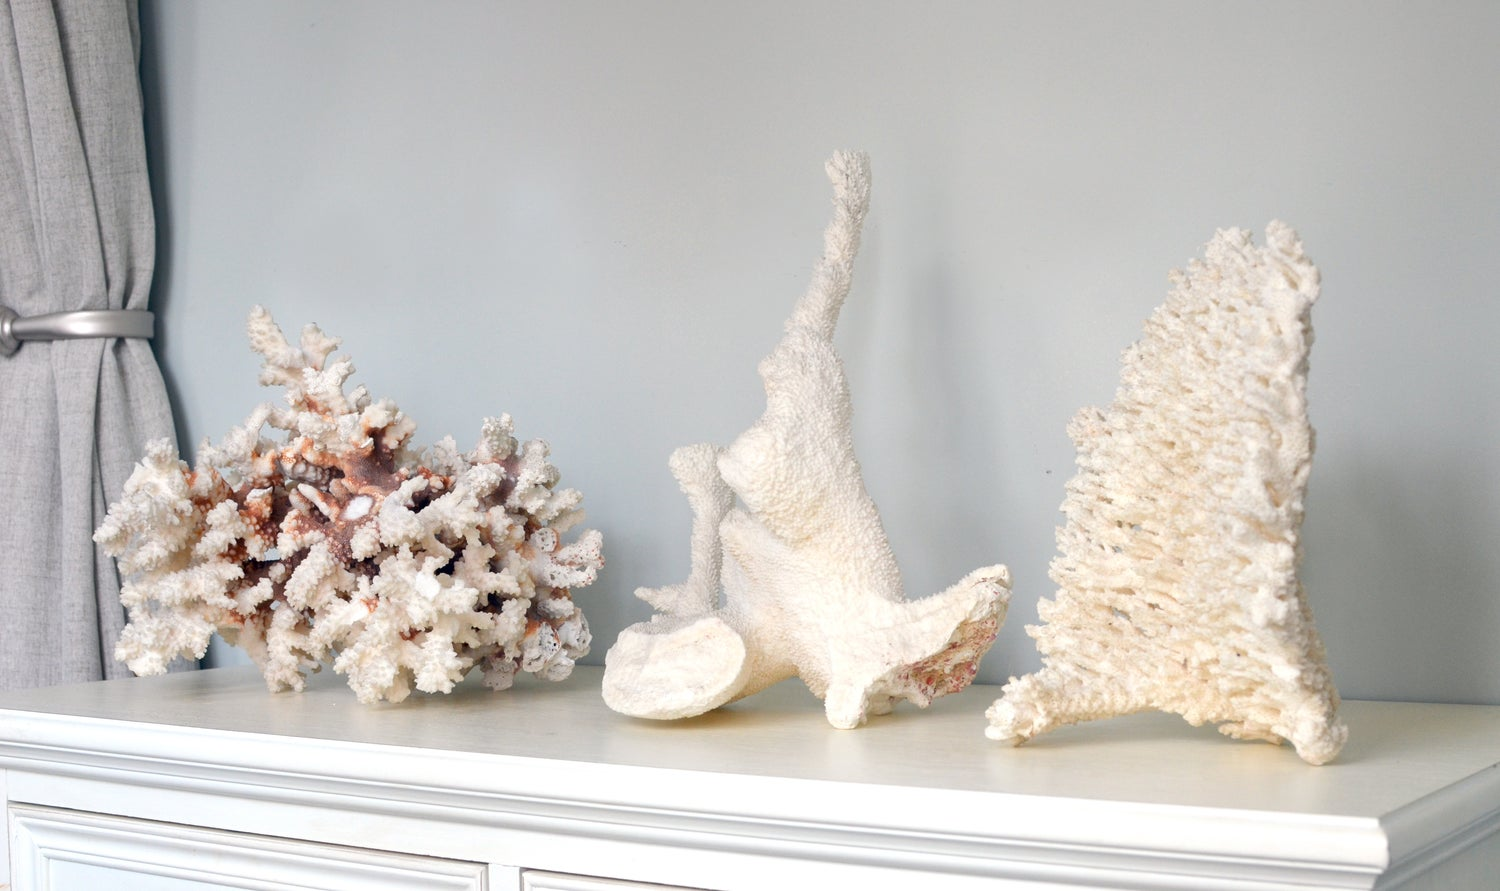 Image of Three monumental fragments of natural white coral